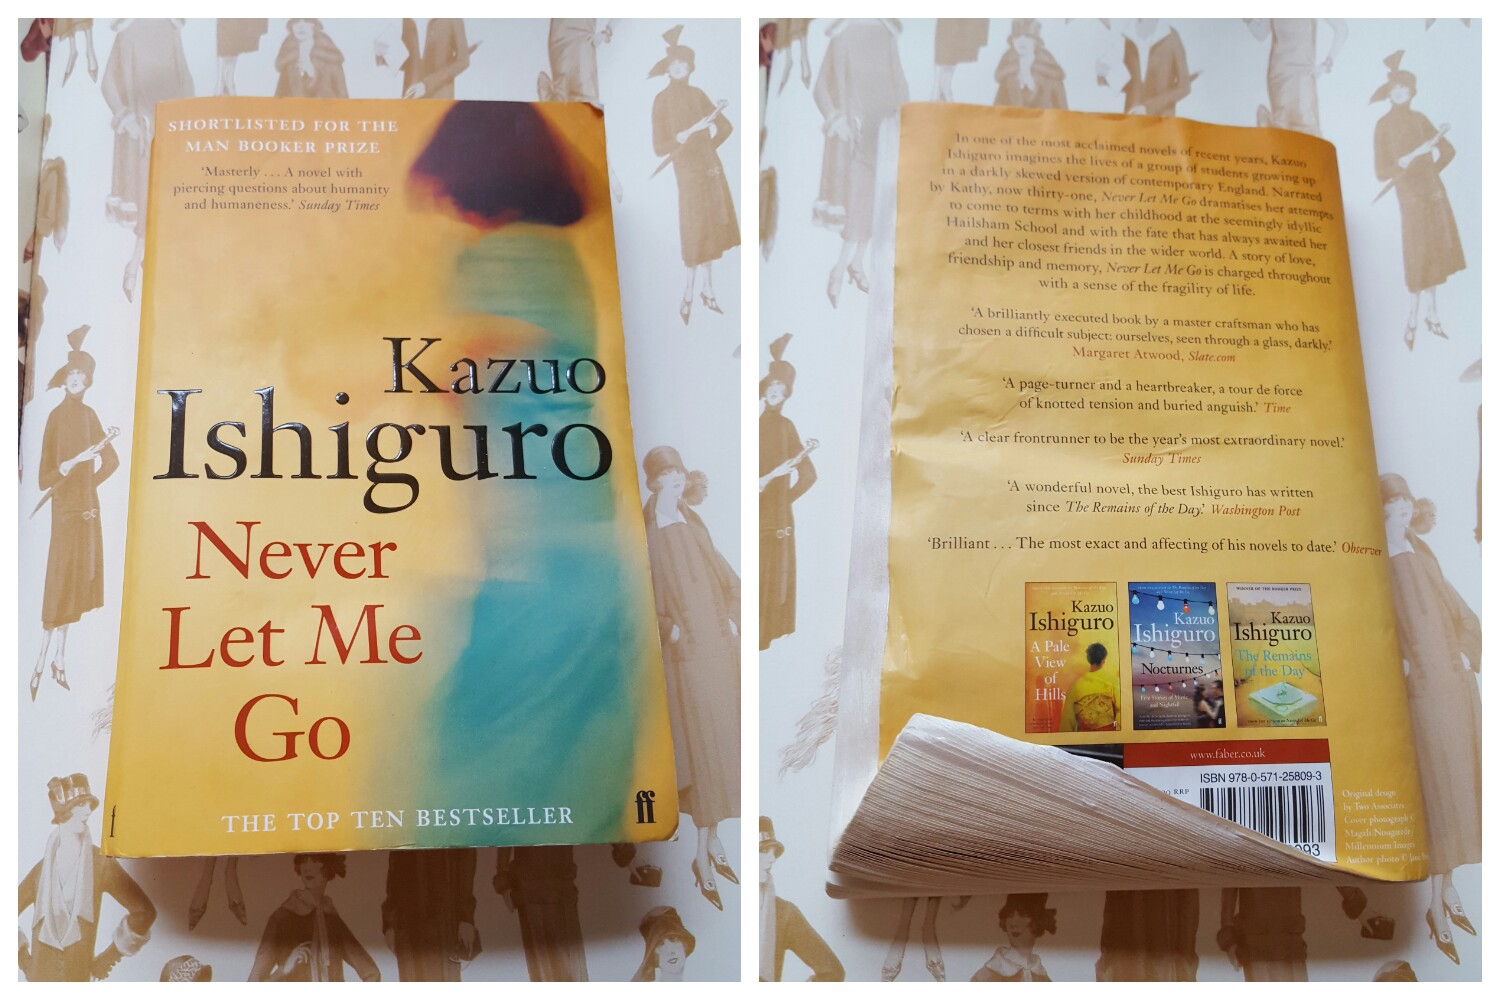 analysis kazuo ishiguro s never let me go Understanding kazuo ishiguro's never let me go: a complete gsce study guide for gcse english literature students for exams from 2017 jan 11, 2017 by gavin smithers.